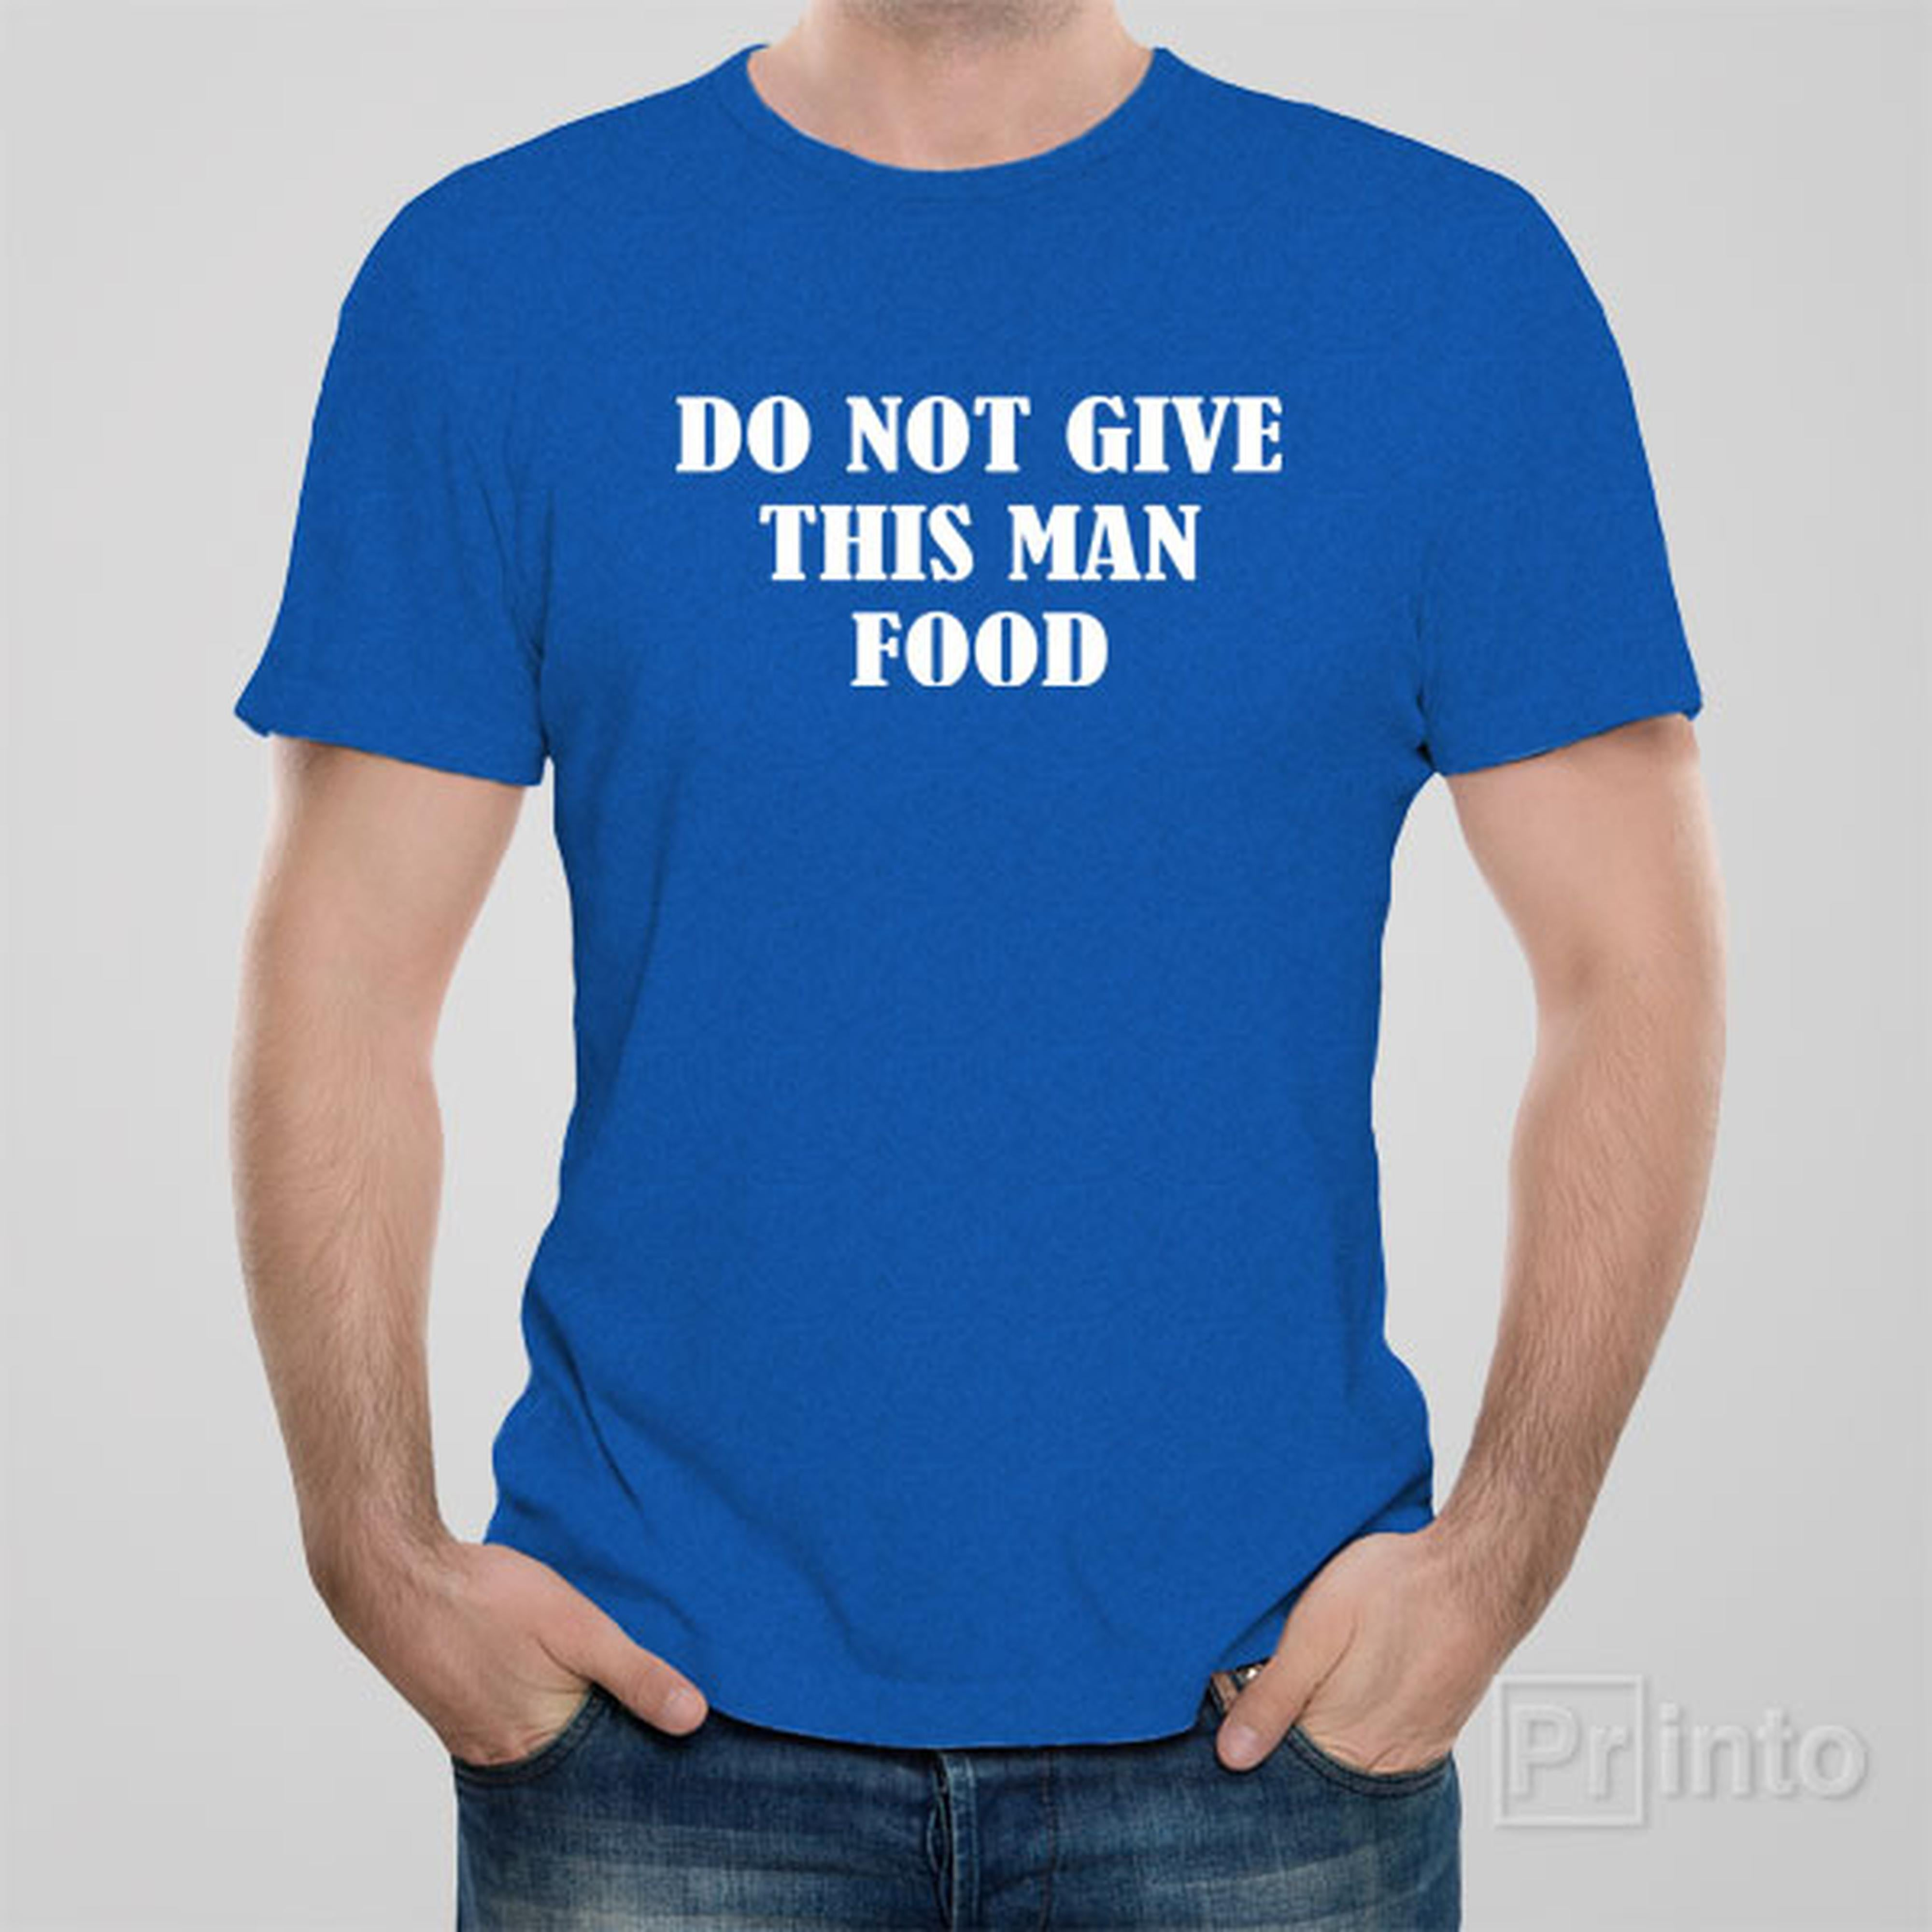 do-not-give-this-man-food-t-shirt